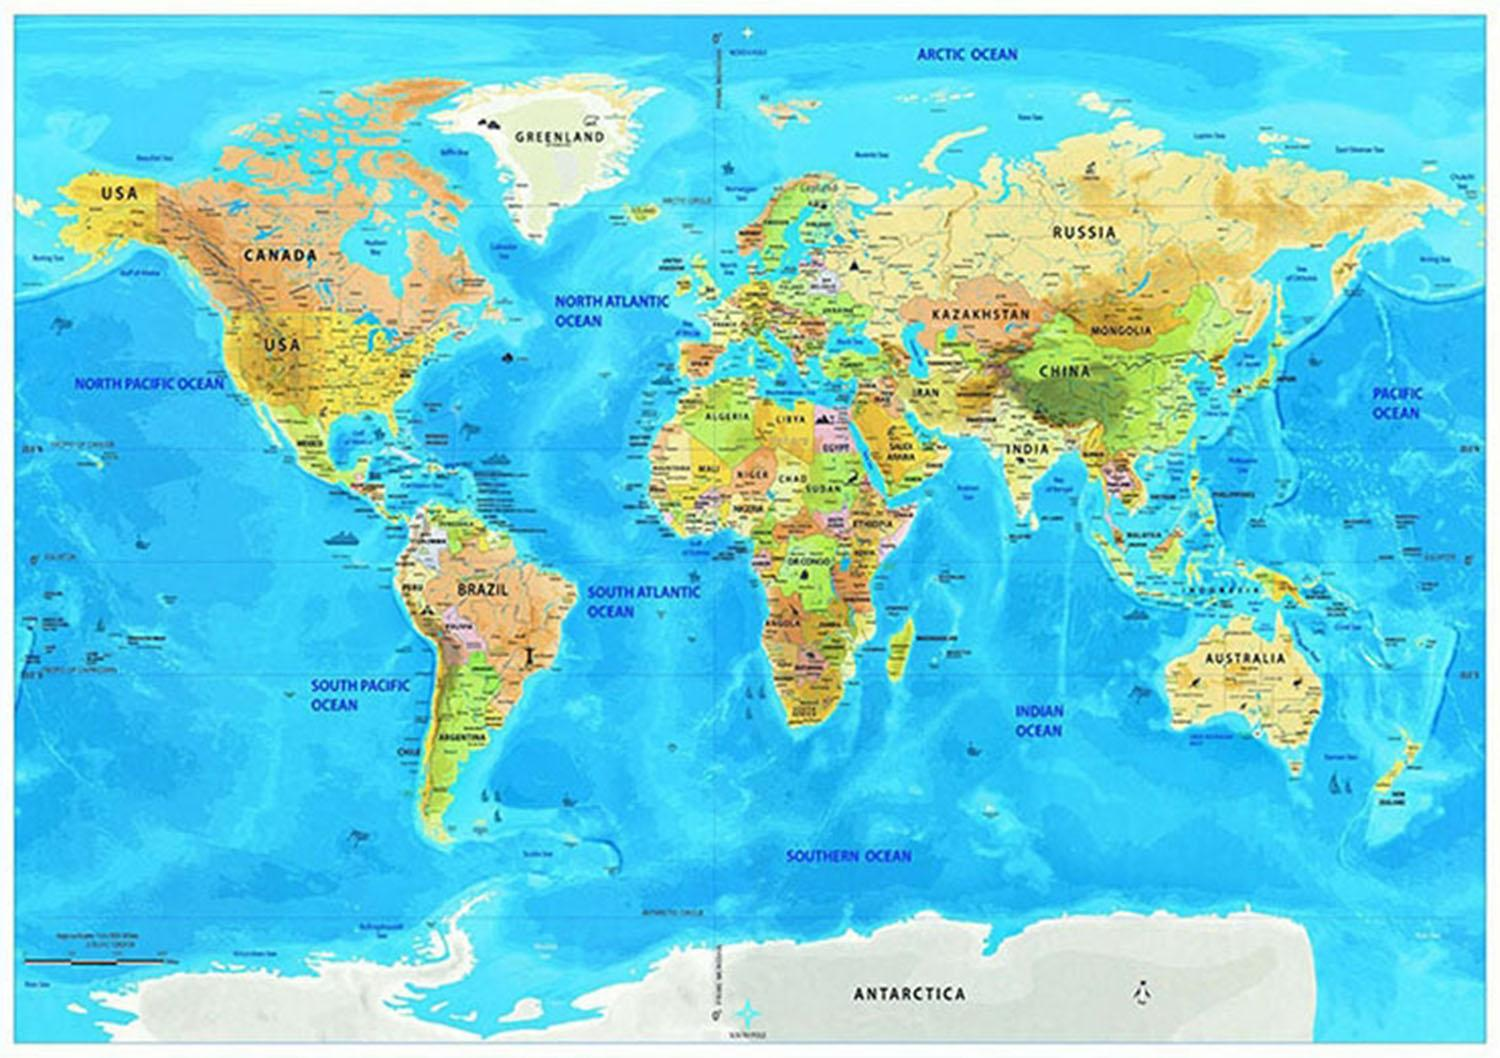 Details about Large Scratch Off World Map Poster with  Mountains,Rivers,Cities,Flags